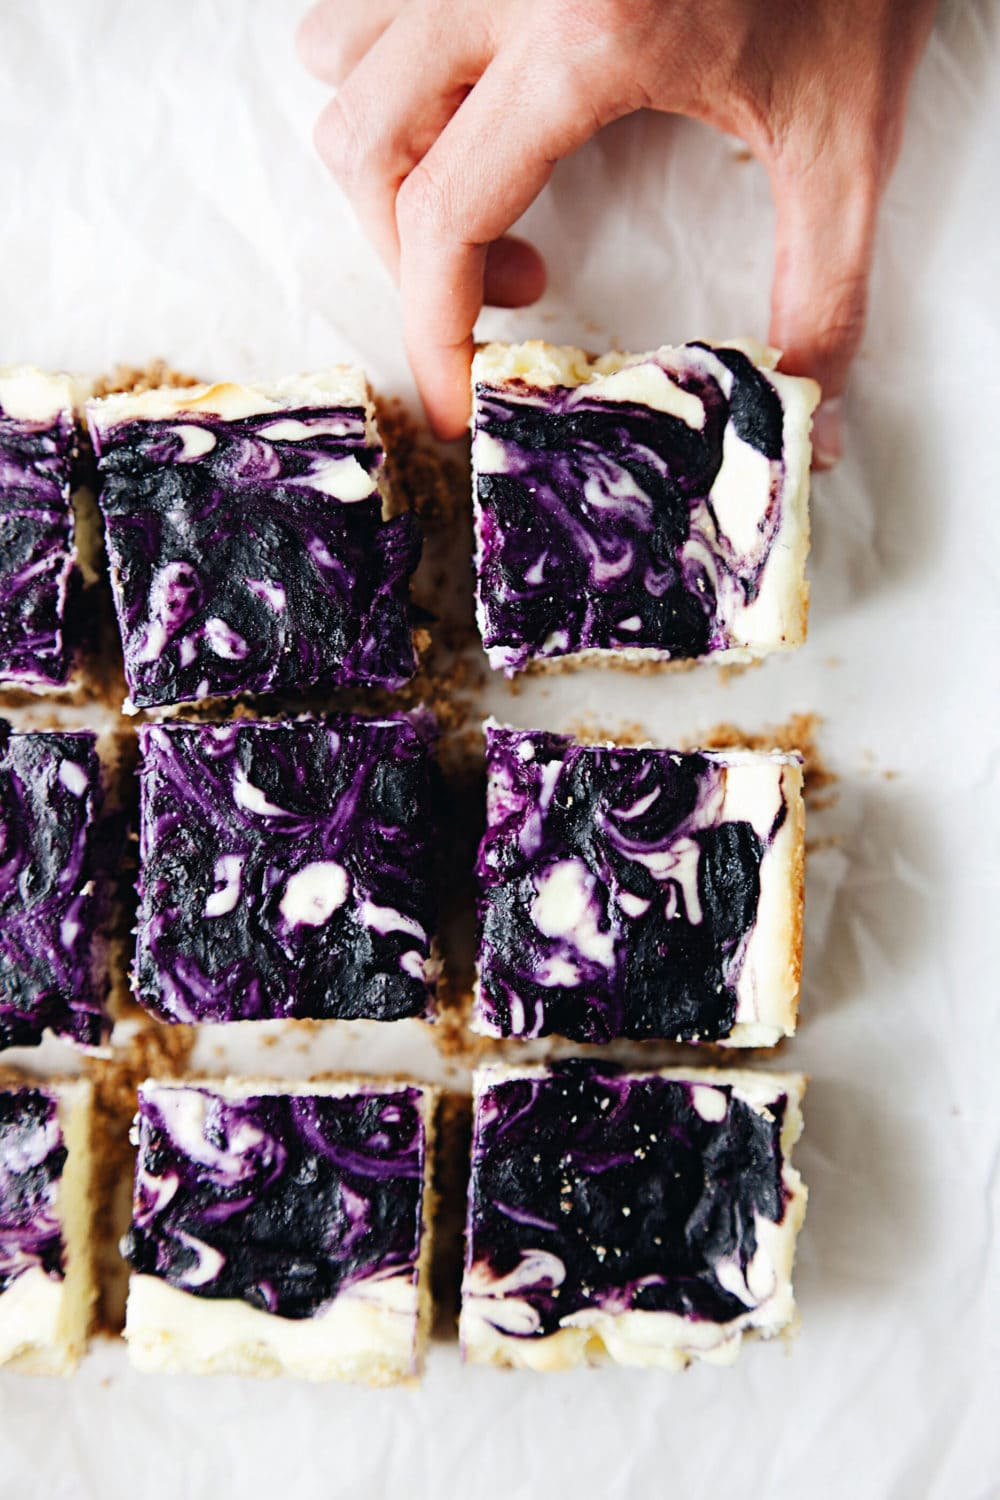 Creamy blueberry cheesecake bars with an almond graham cracker crust! SO decadent and beautiful. | asimplepalate.com #cheesecake #dessert #blueberry #bars